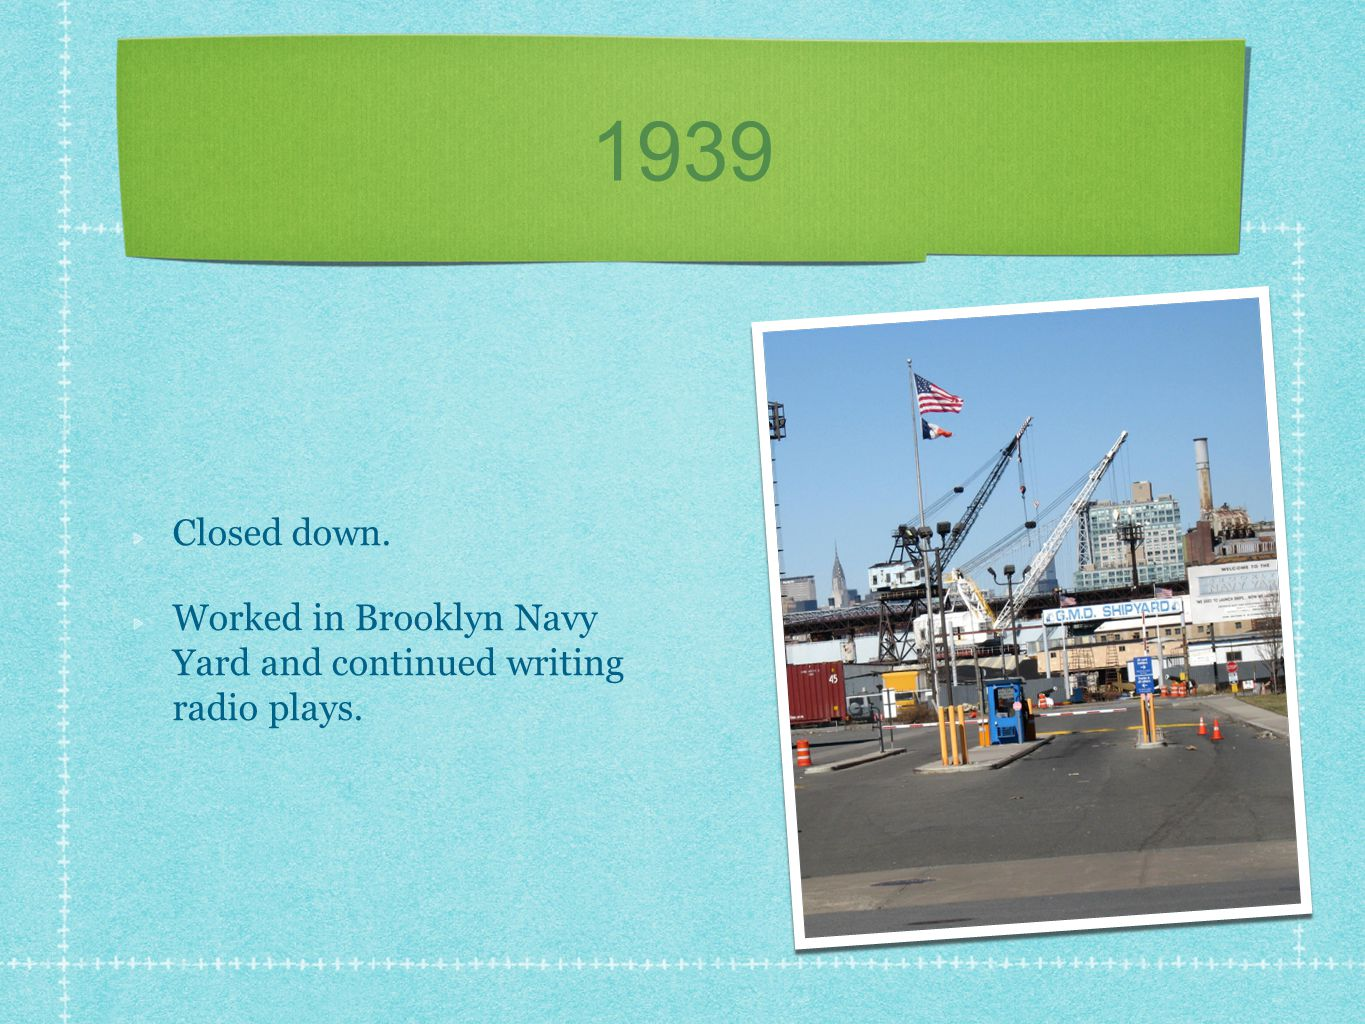 1939 Closed down. Worked in Brooklyn Navy Yard and continued writing radio plays.